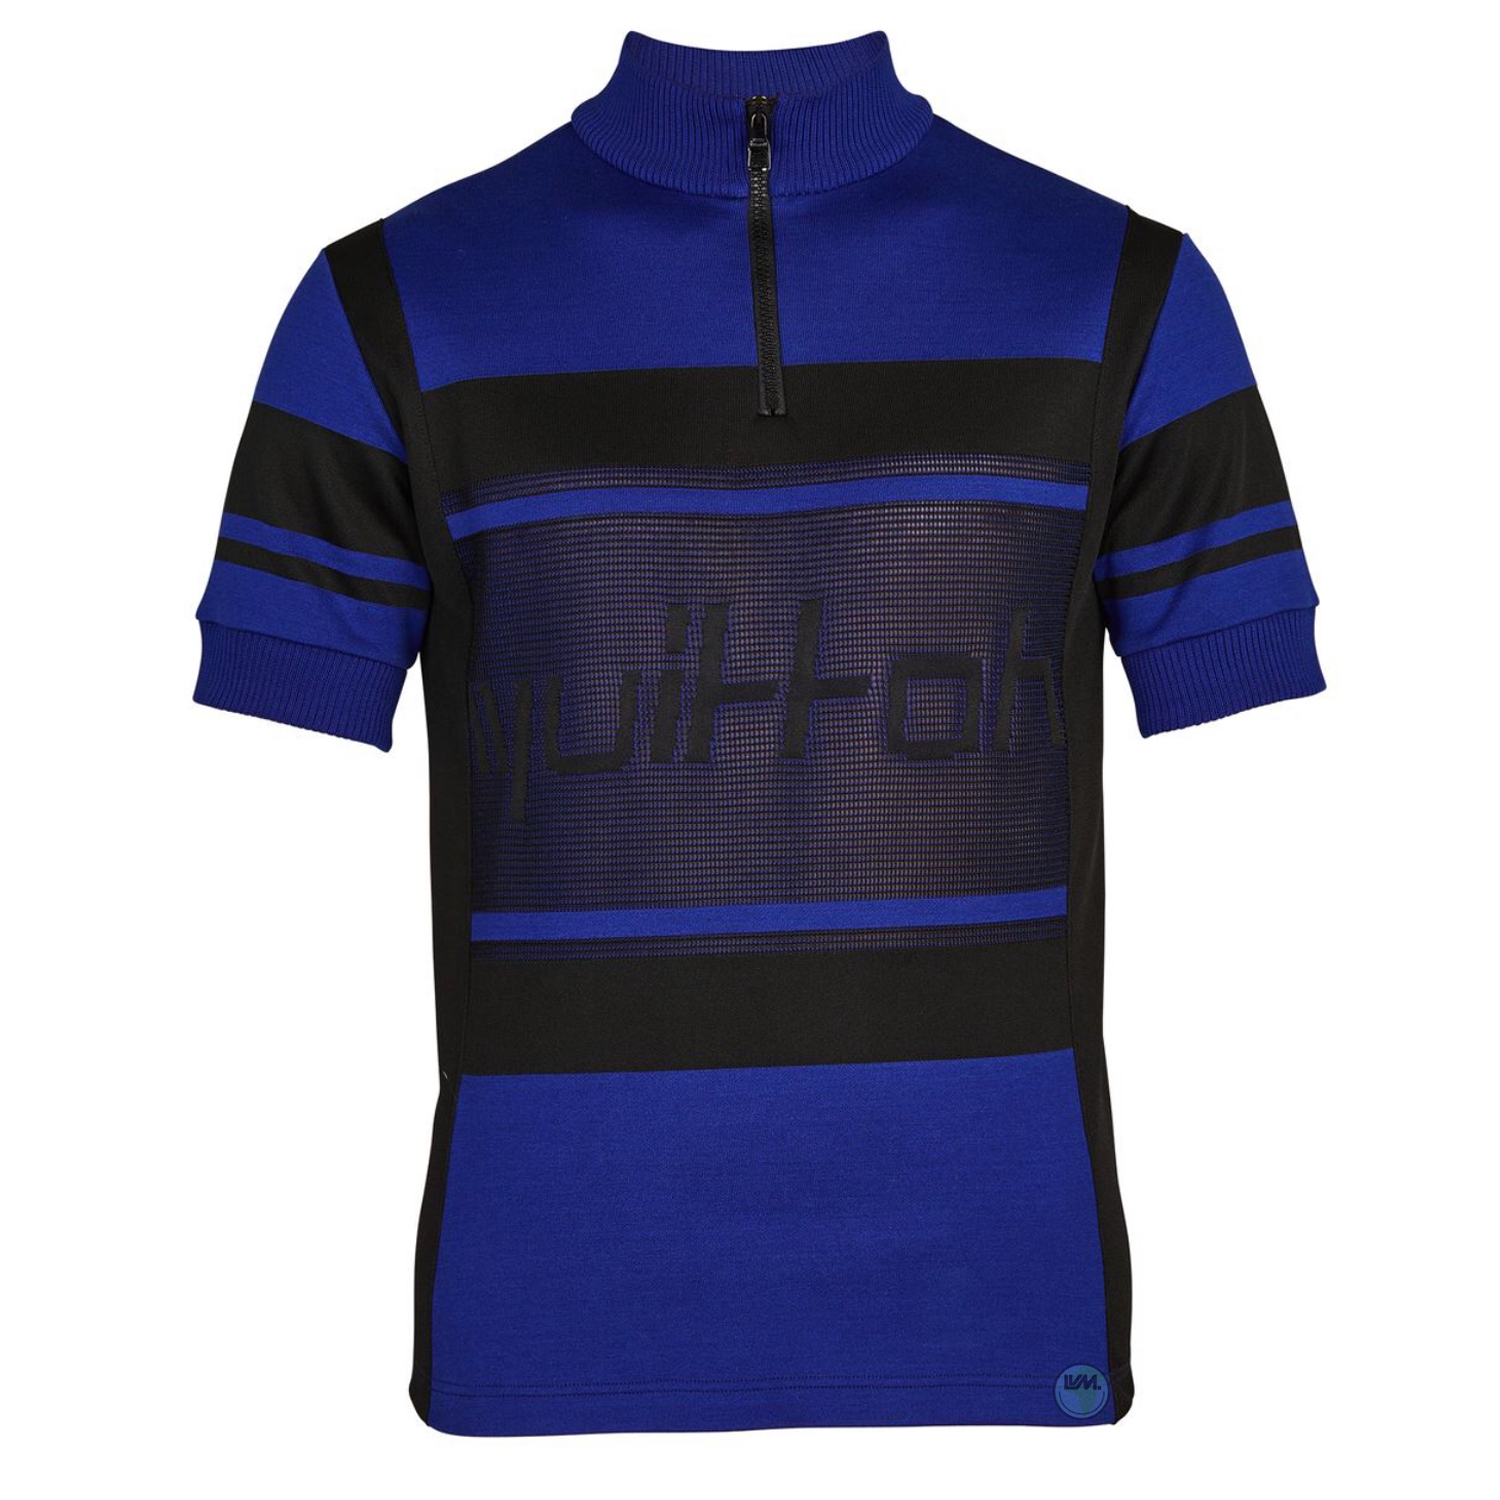 JACQUARD CYCLING TOP - €690 $9201a5cn1bleu